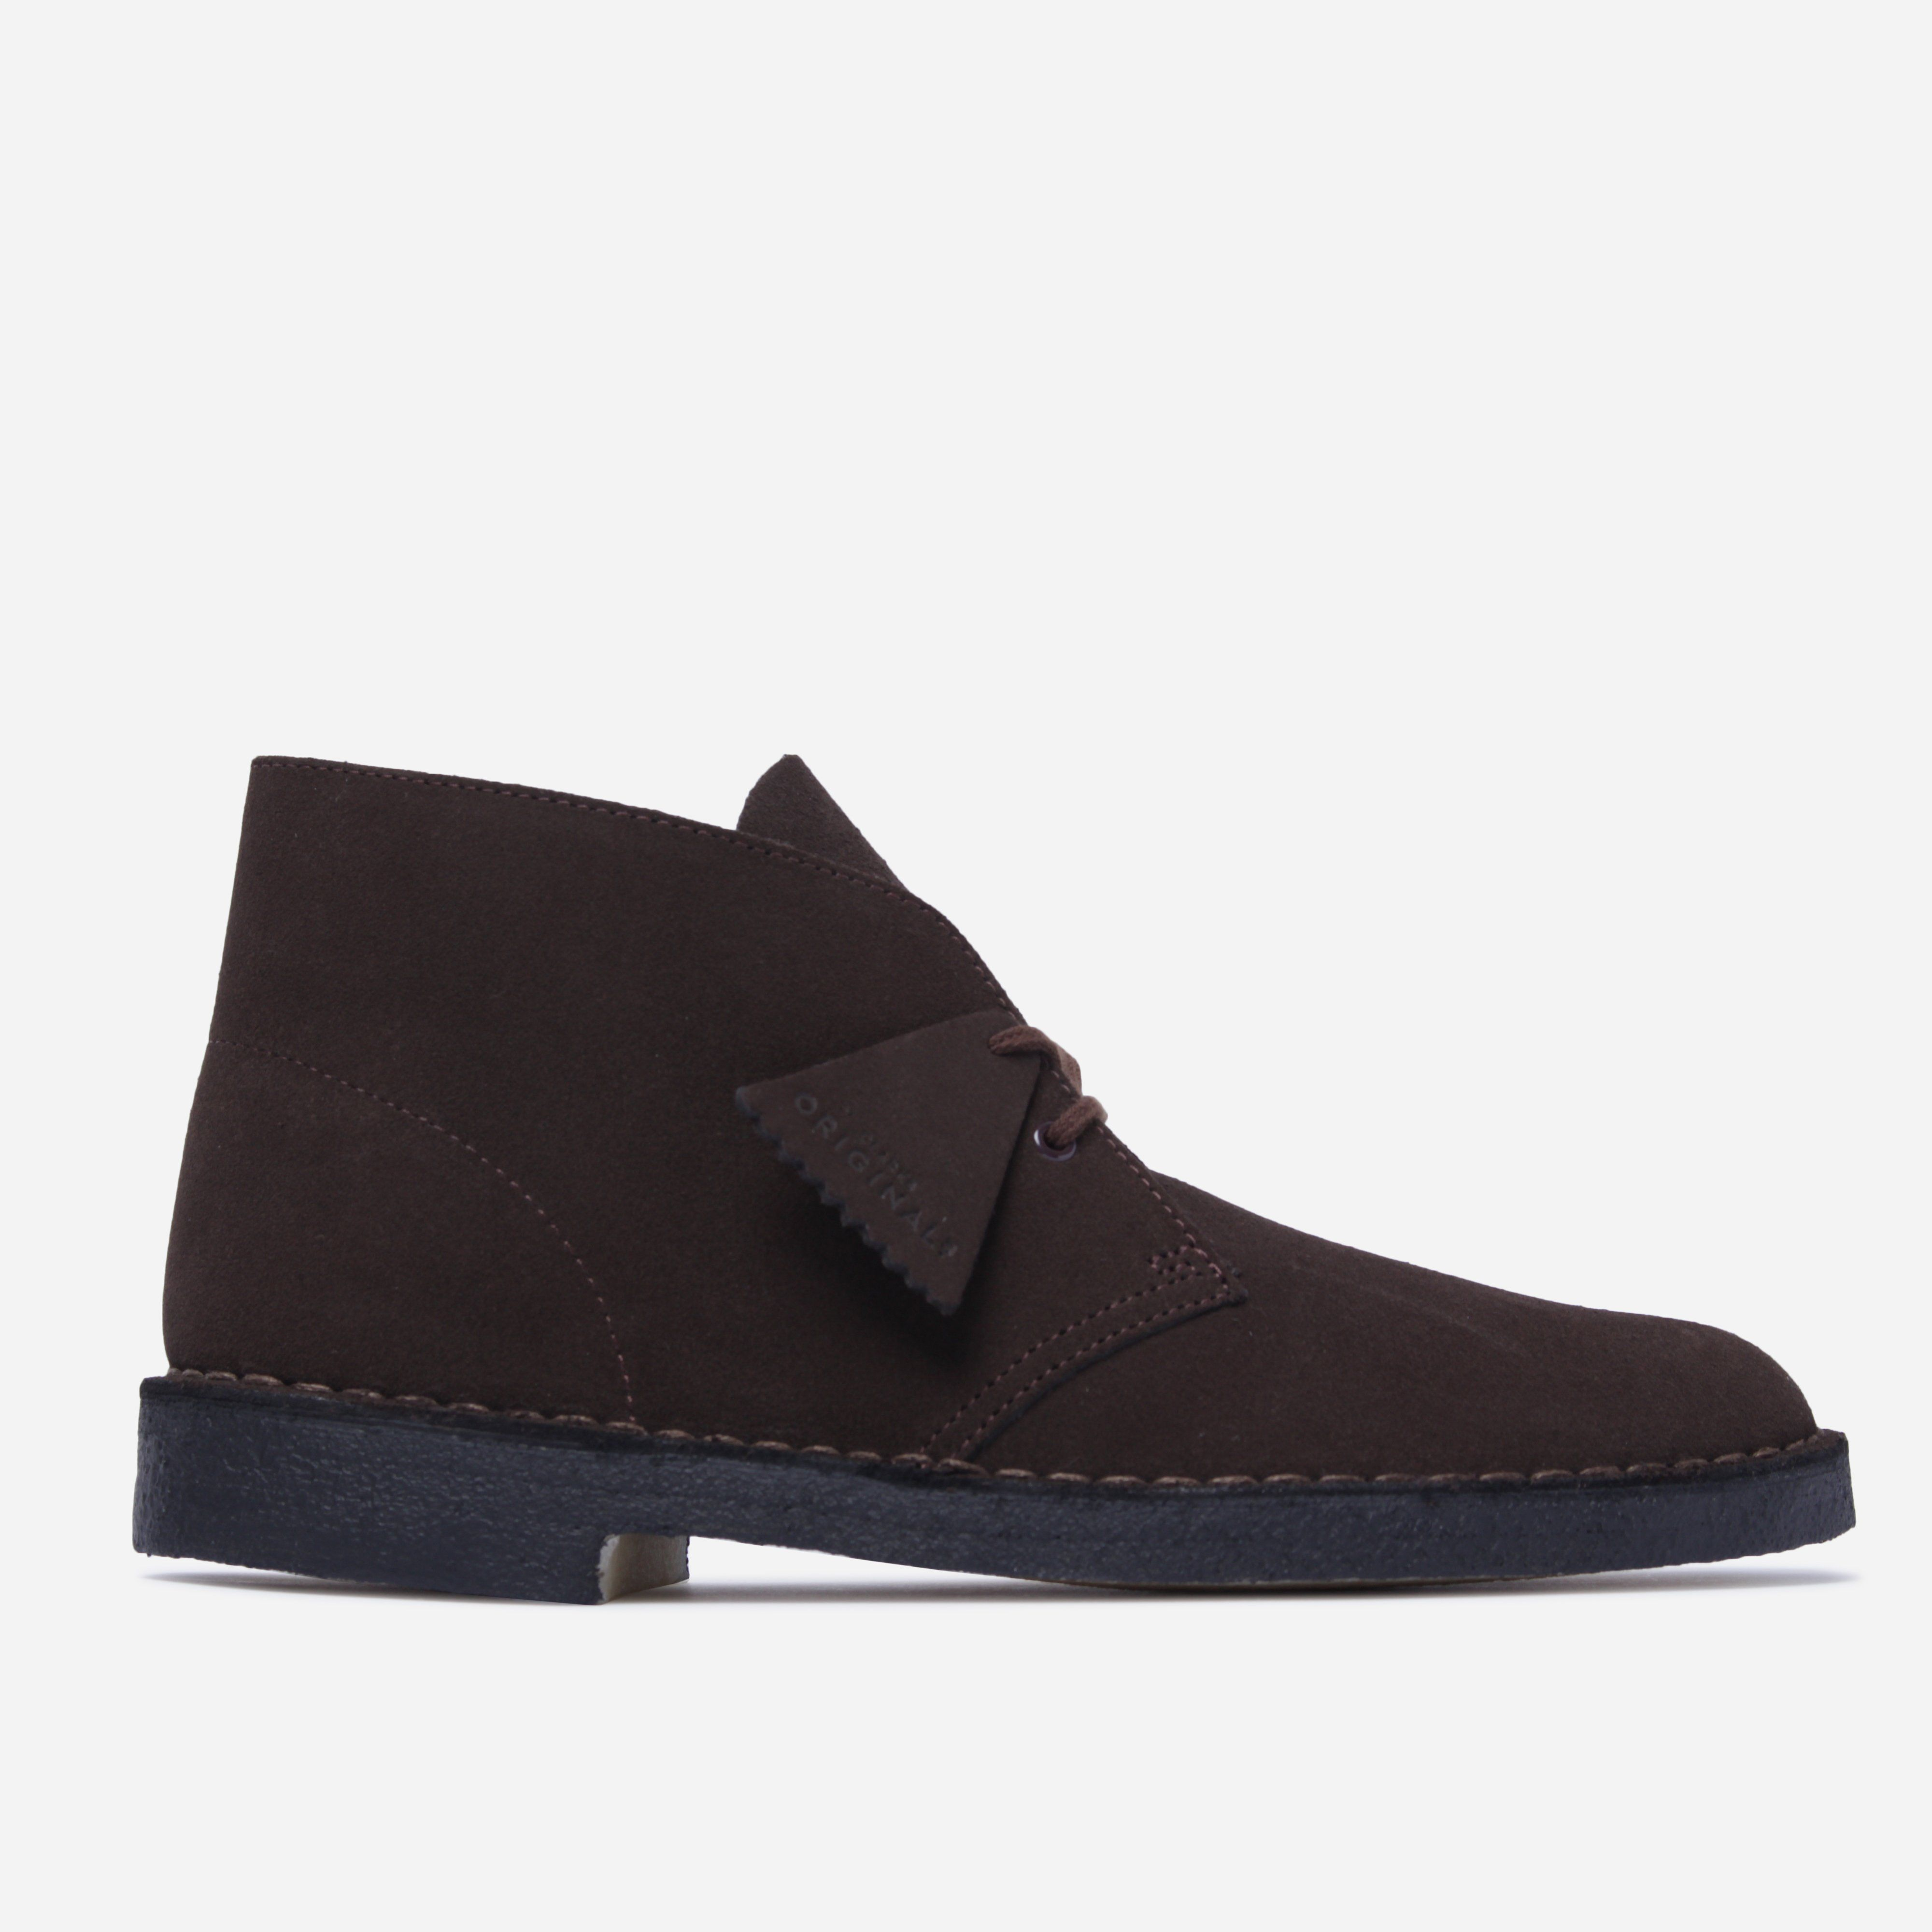 Clarks Originals 26138229 DESERT BOOT